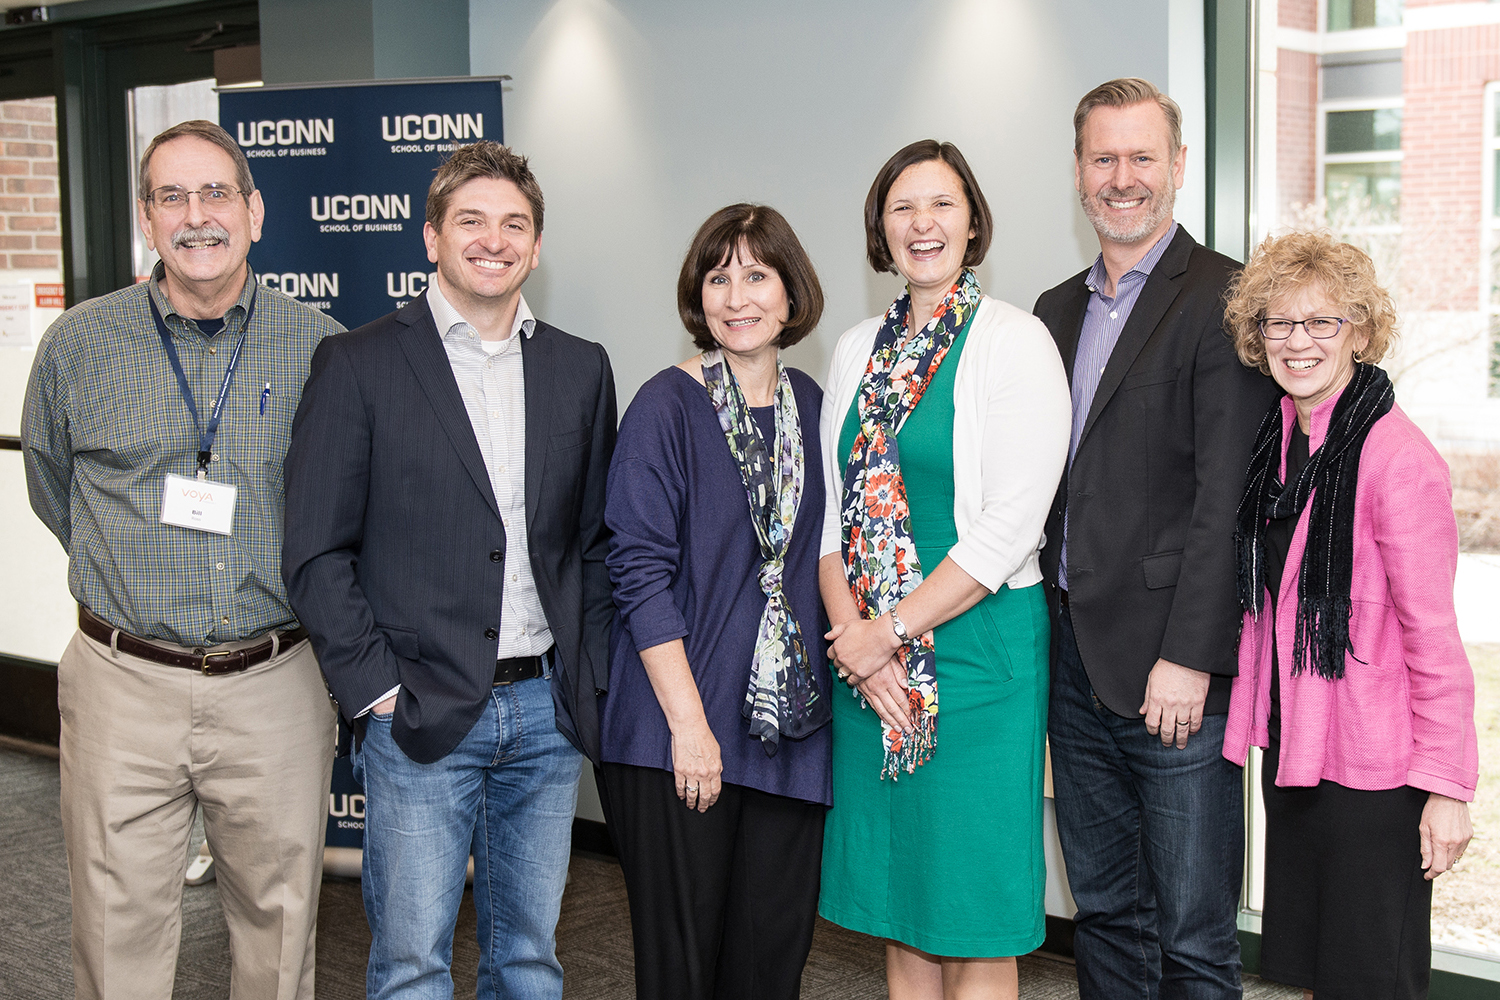 From left: Bill Ross, Remi Trudel, Jennifer Escalas, Karen Winterich, Mark Forehand, and Robin Coulter (Nathan Oldham/UConn photo)